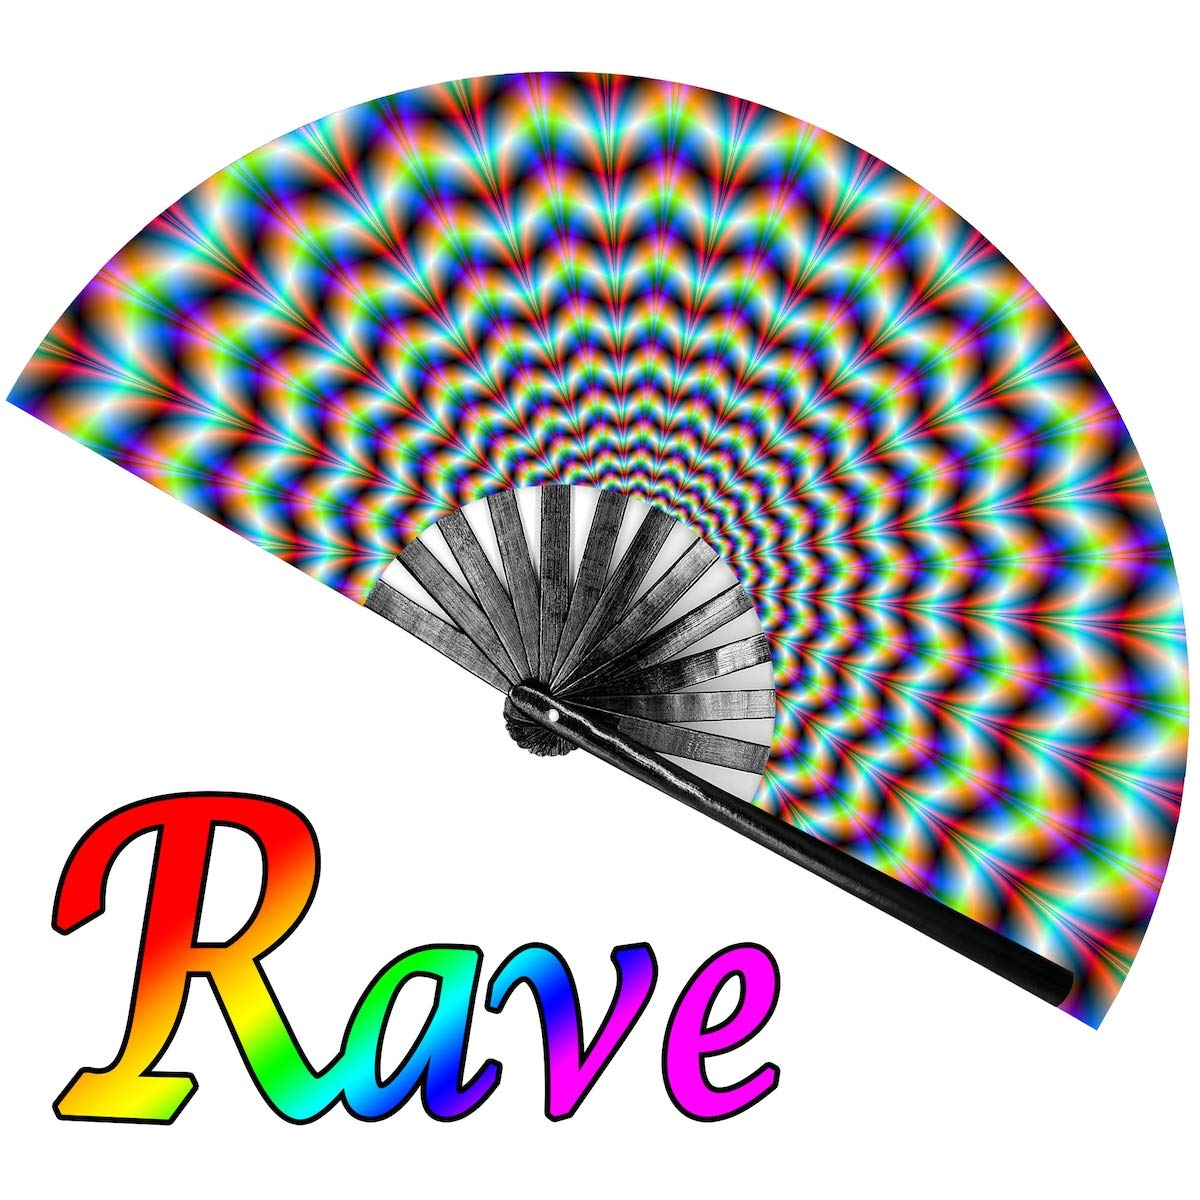 OMyTea Large Rave Clack Folding Hand Fan for Men/Women - Chinese Japanese Bamboo Handheld Fan - for EDM, Music Festival, Club, Event, Party, Dance, Performance, Decoration, Gift (Trippy) by OMyTea